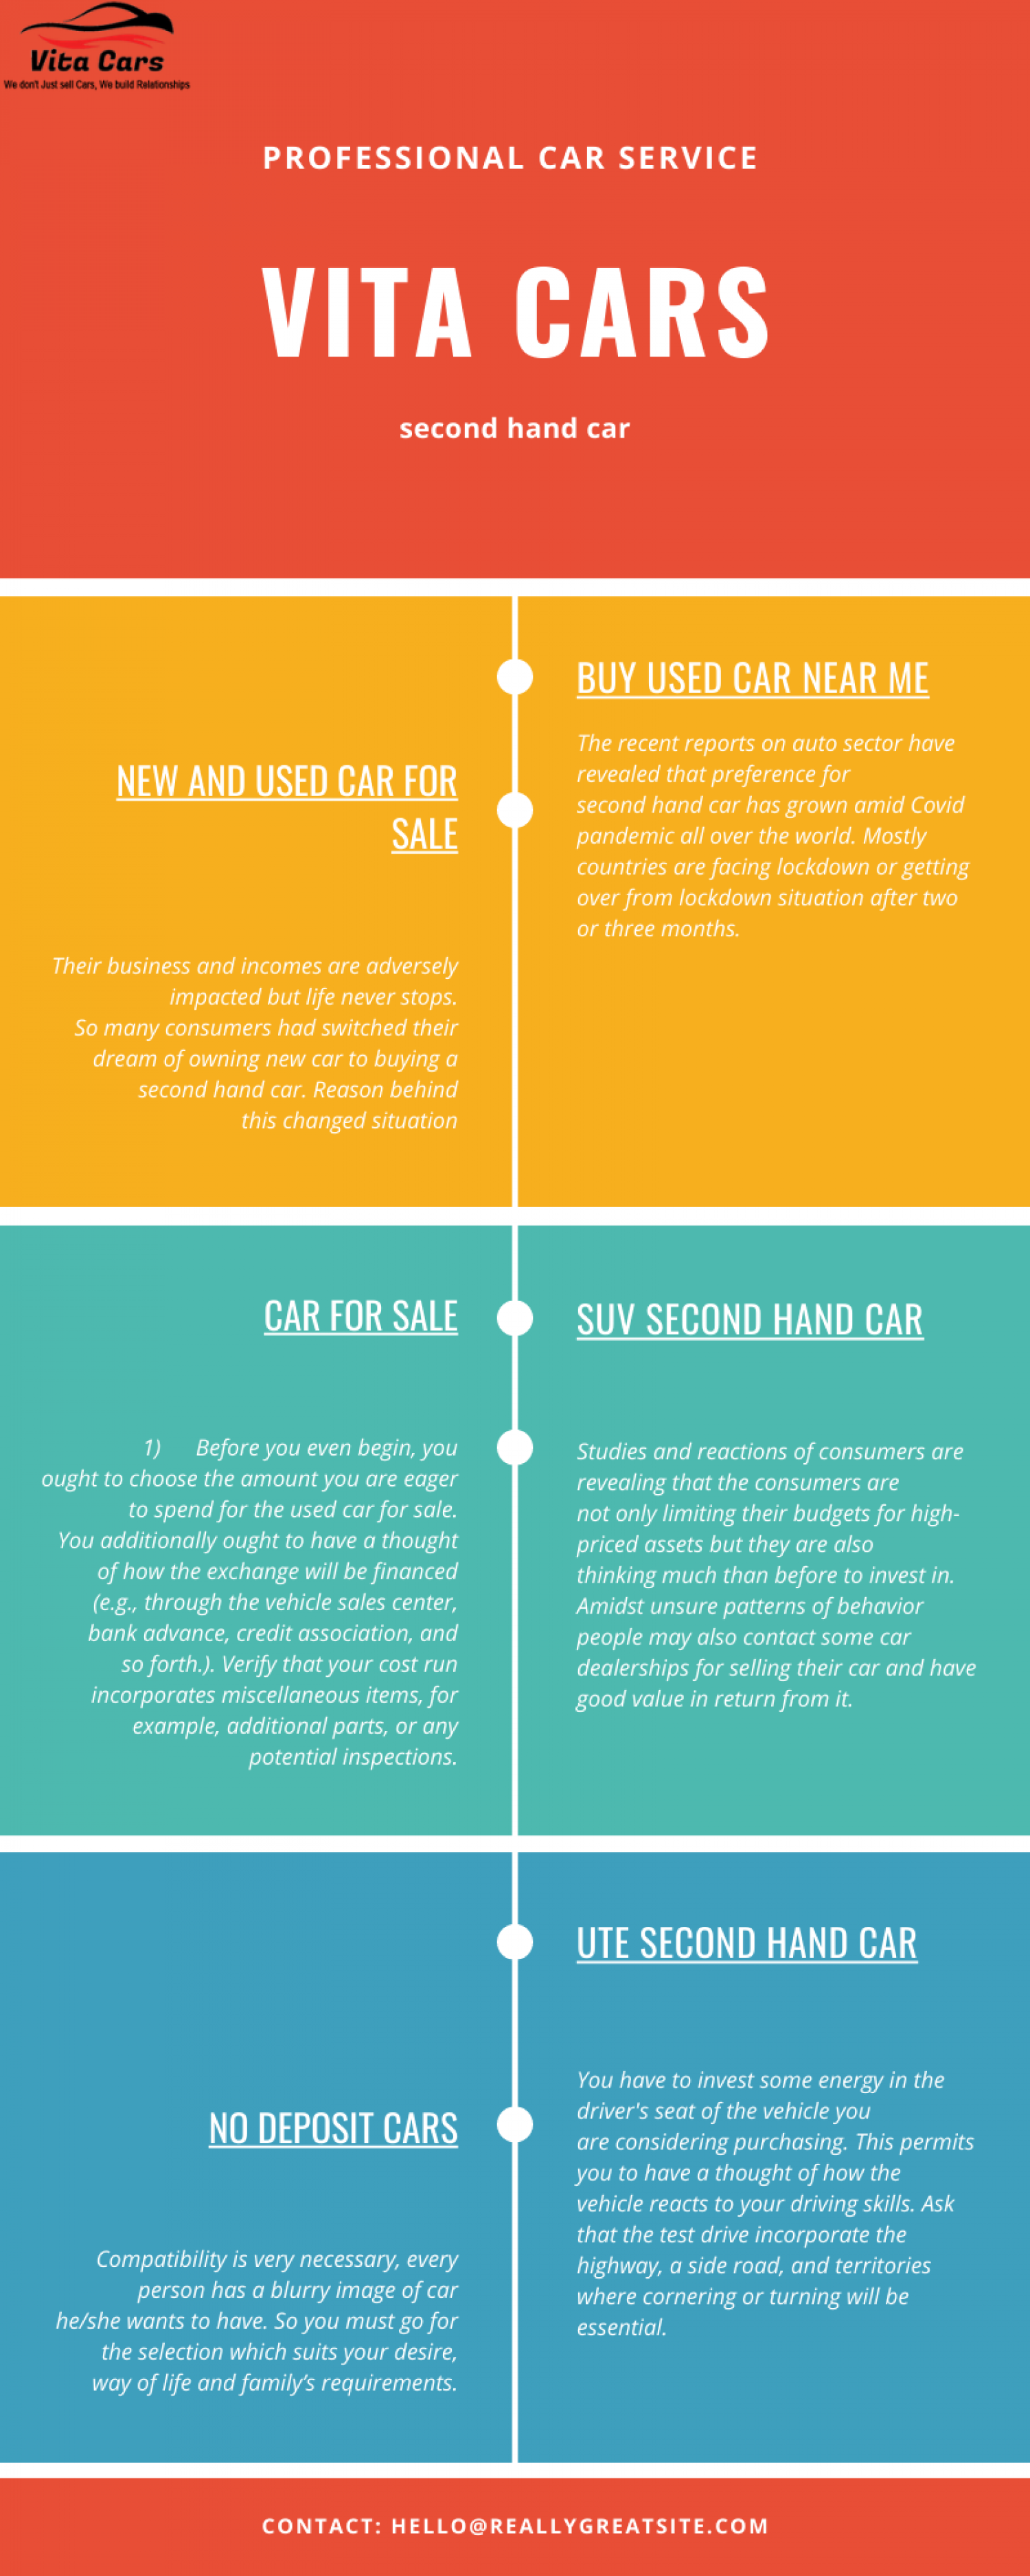 Buy used car near me Infographic